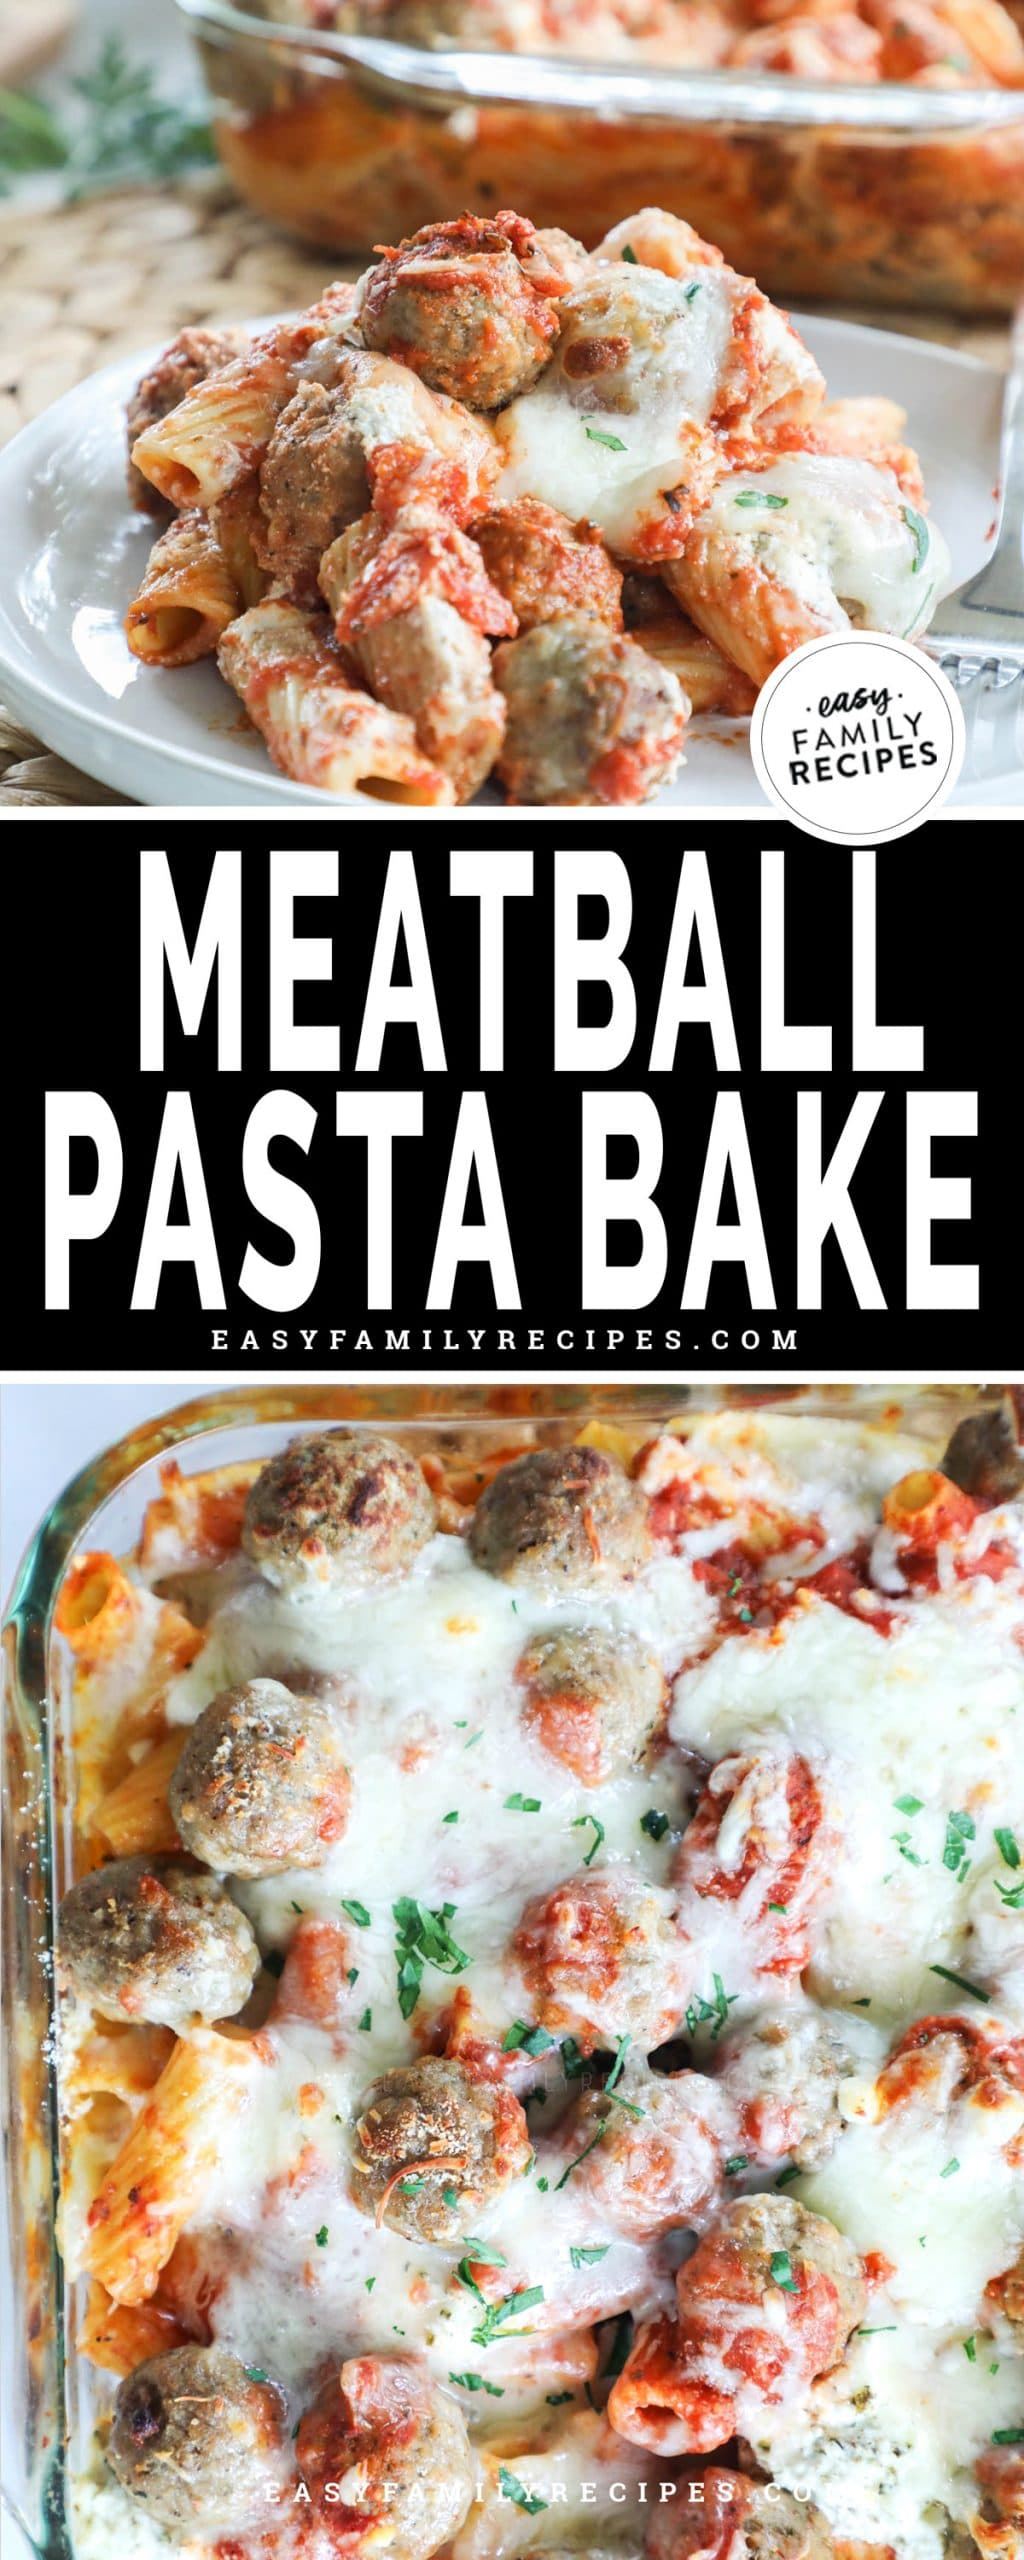 Meatball Pasta Bake served on a plate for aa family friendly dinner